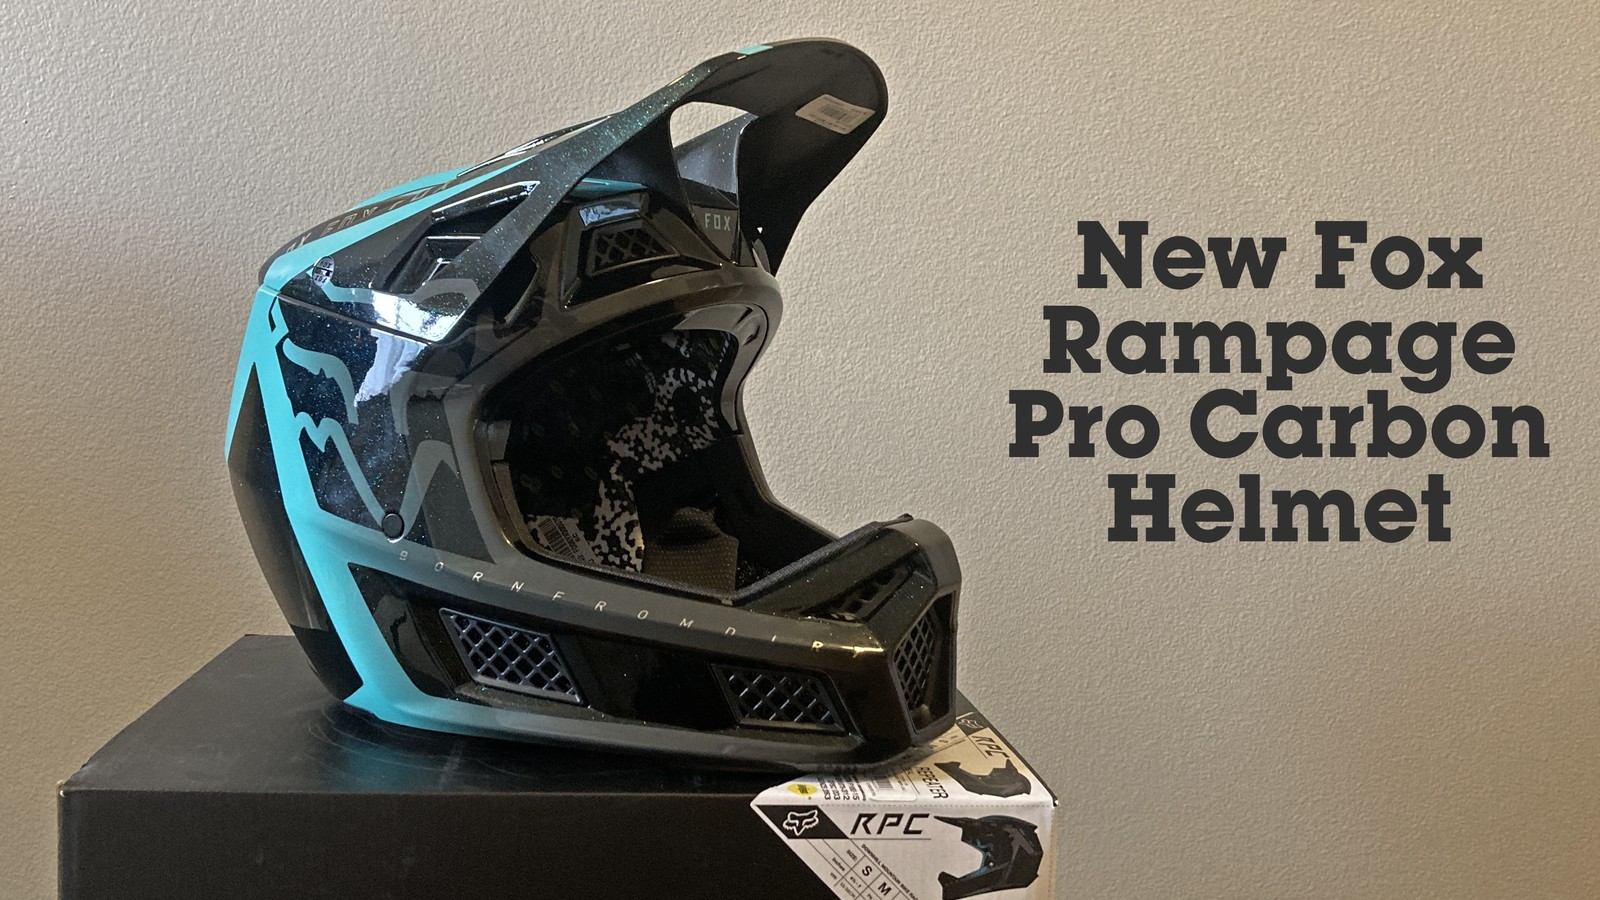 Fox Racing Introduces New Rampage Pro Carbon Helmet